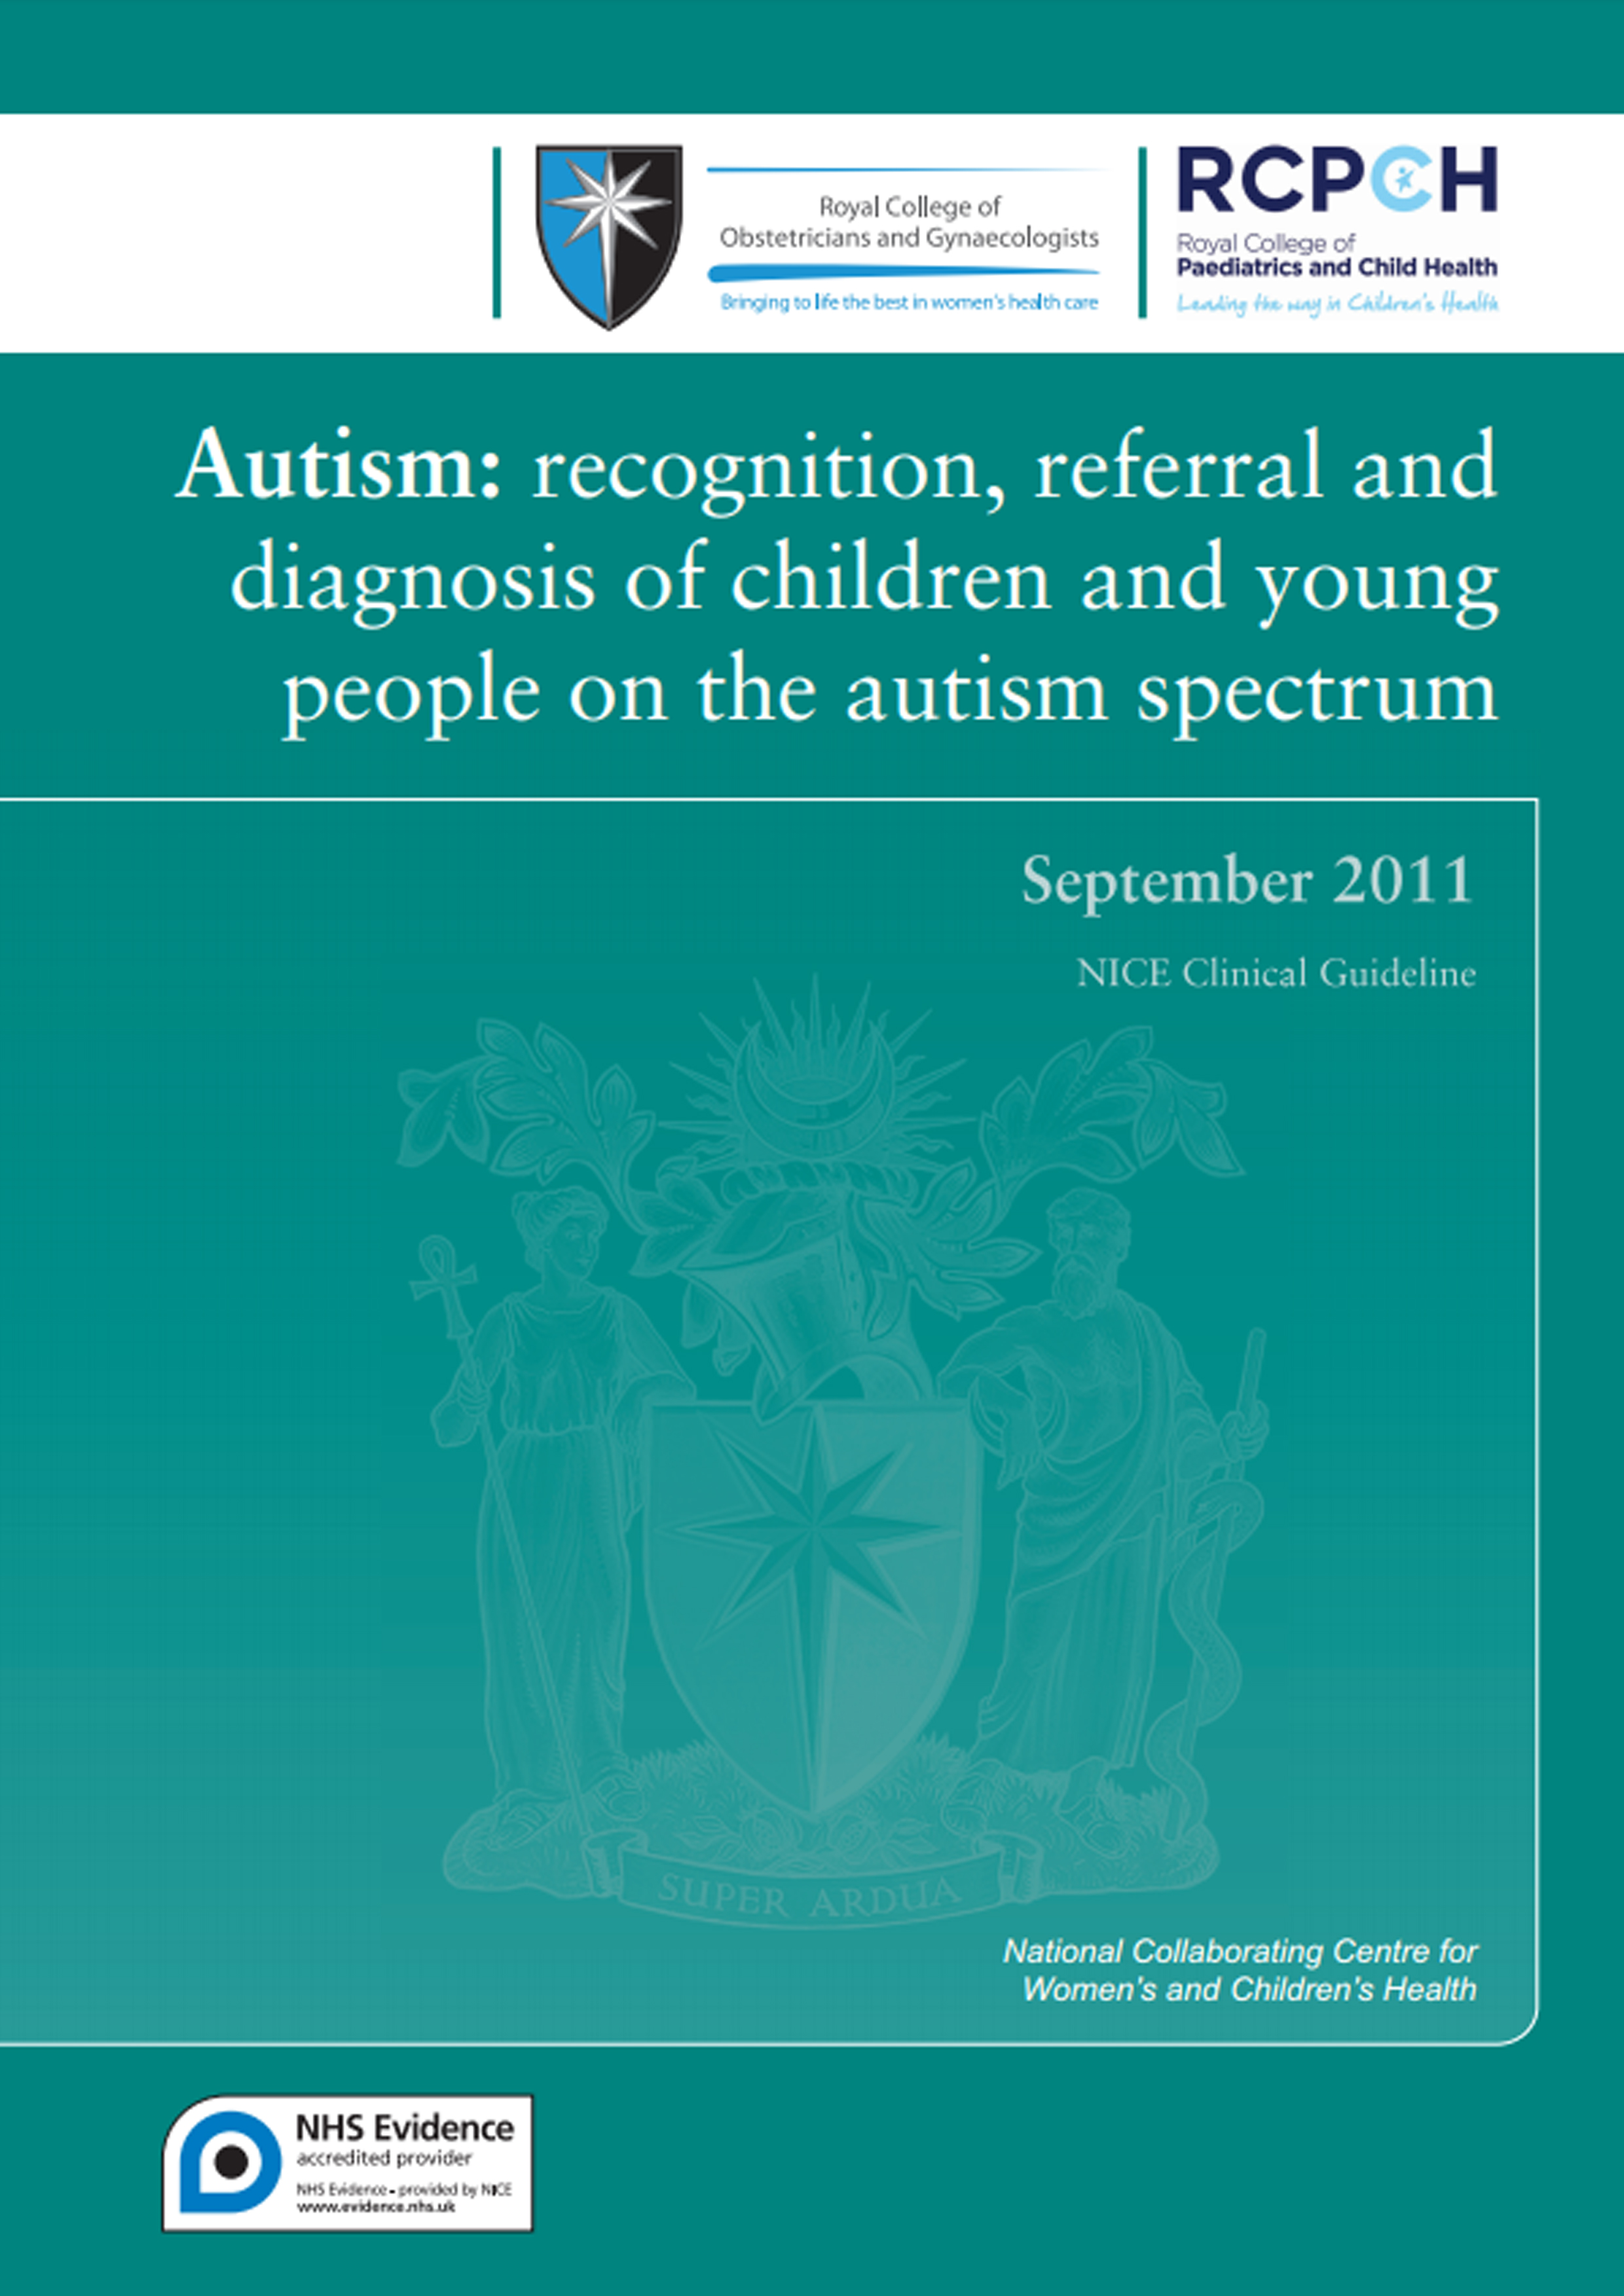 Autism Recognition referral and diagnosis of children and young